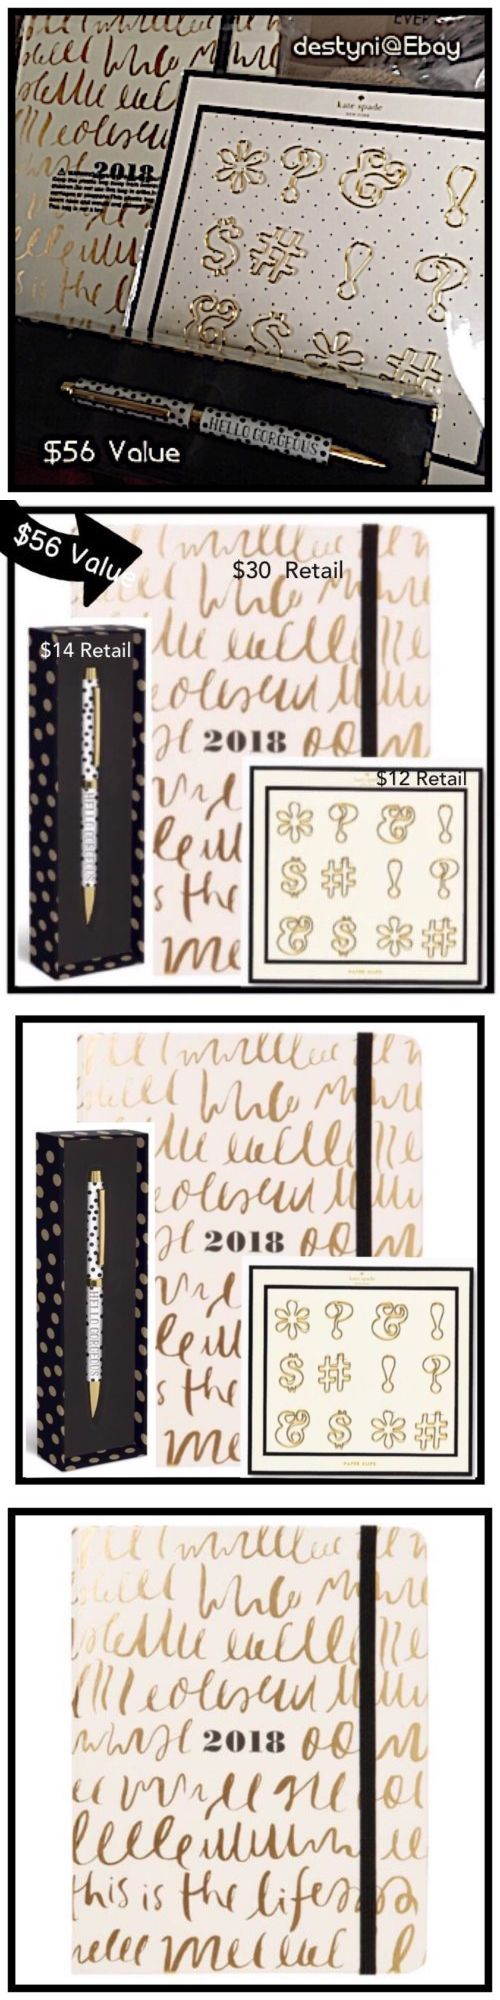 Organizers and Day Planners 15735: Kate Spade New York Medium Agenda 2017- 2018 This Is The Life Paper Clip Set Pen -> BUY IT NOW ONLY: $35 on eBay!